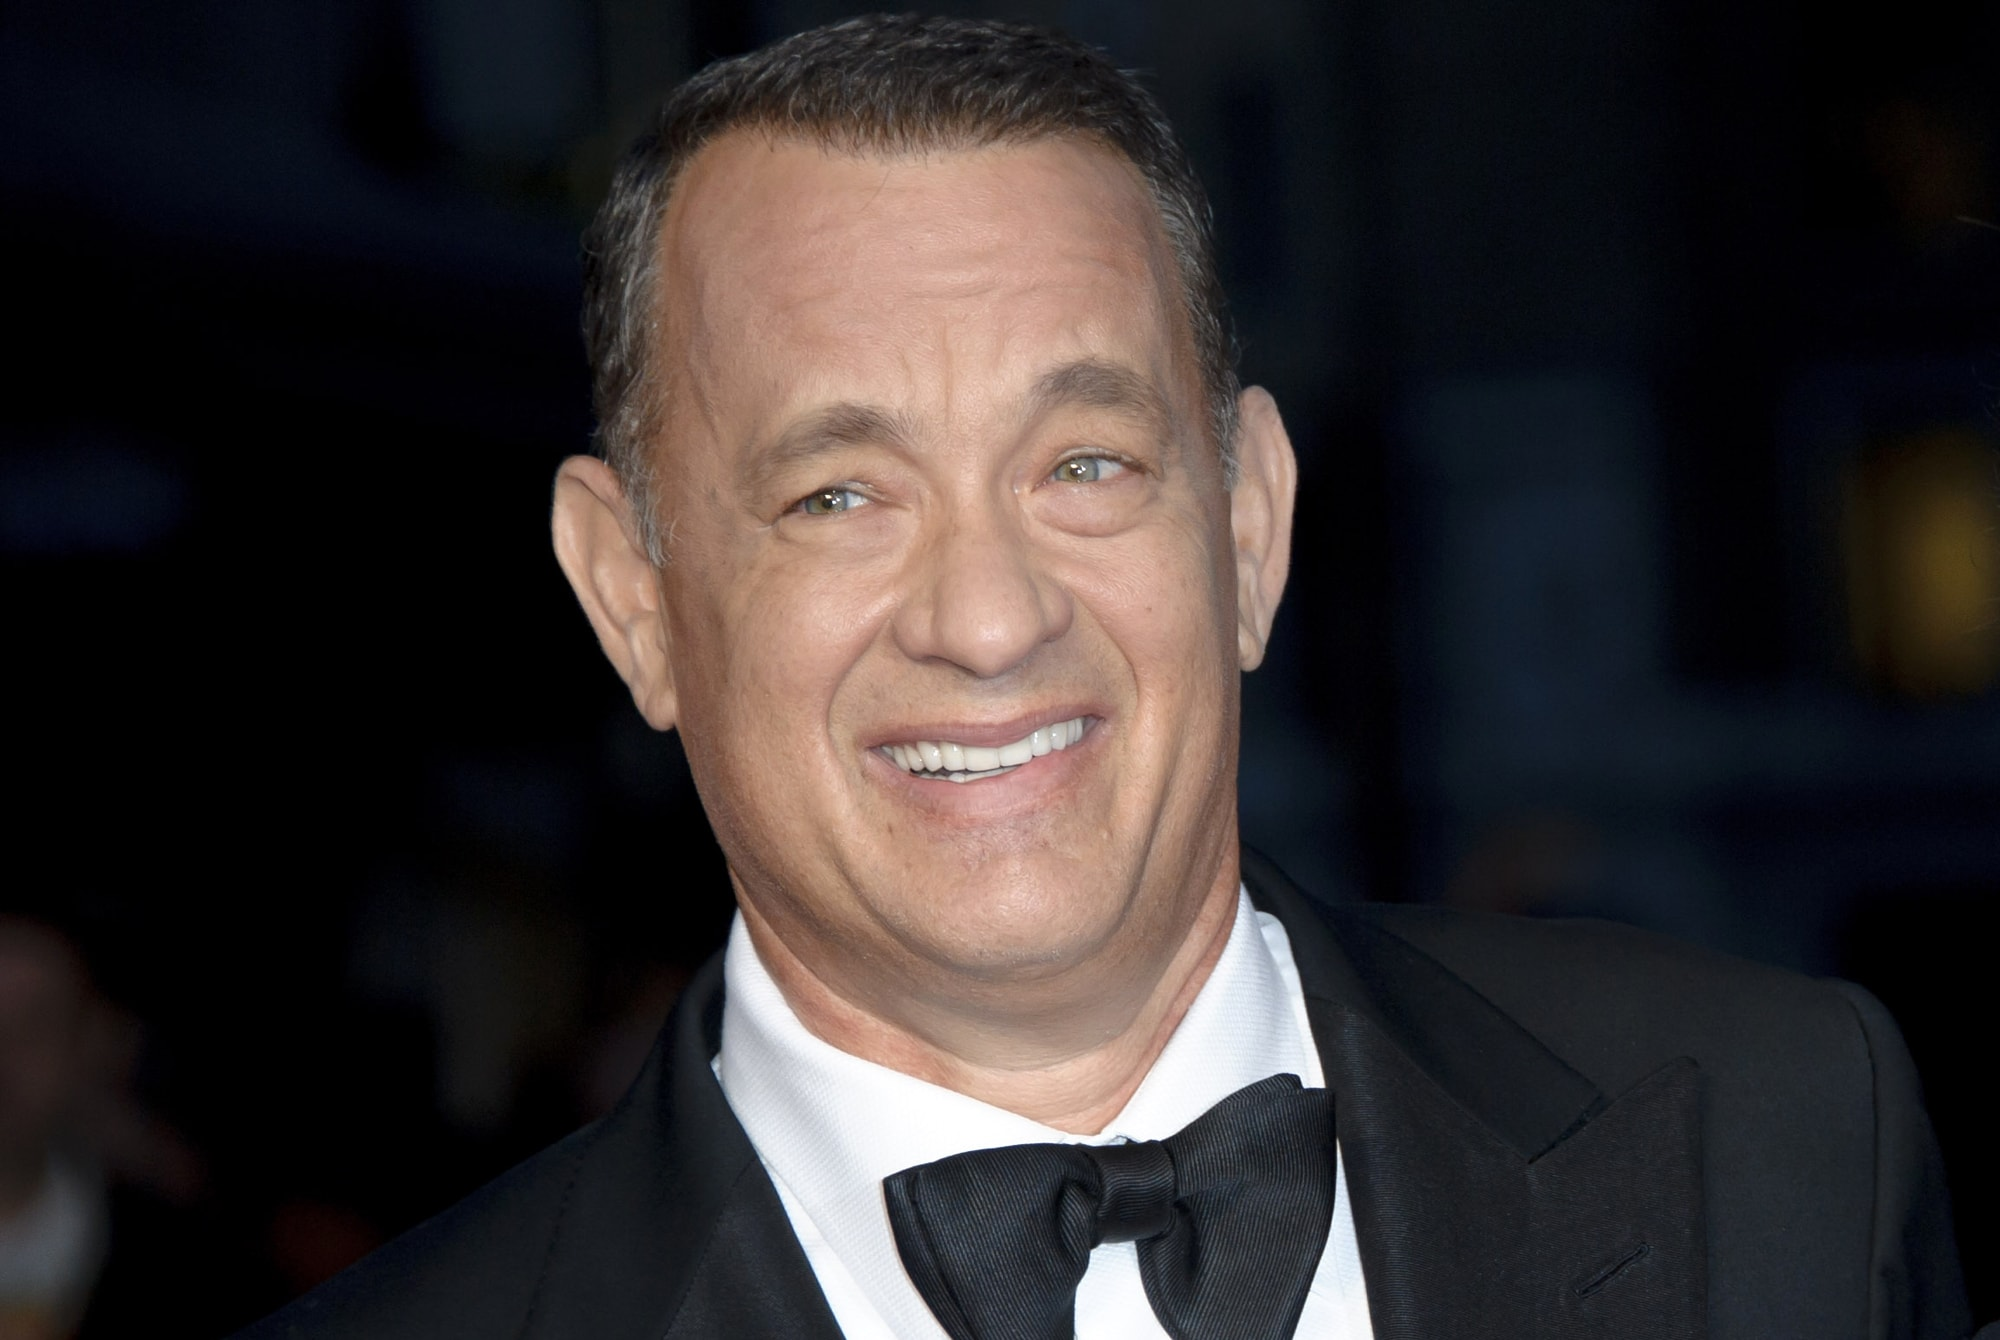 Tom Hanks Wallpapers